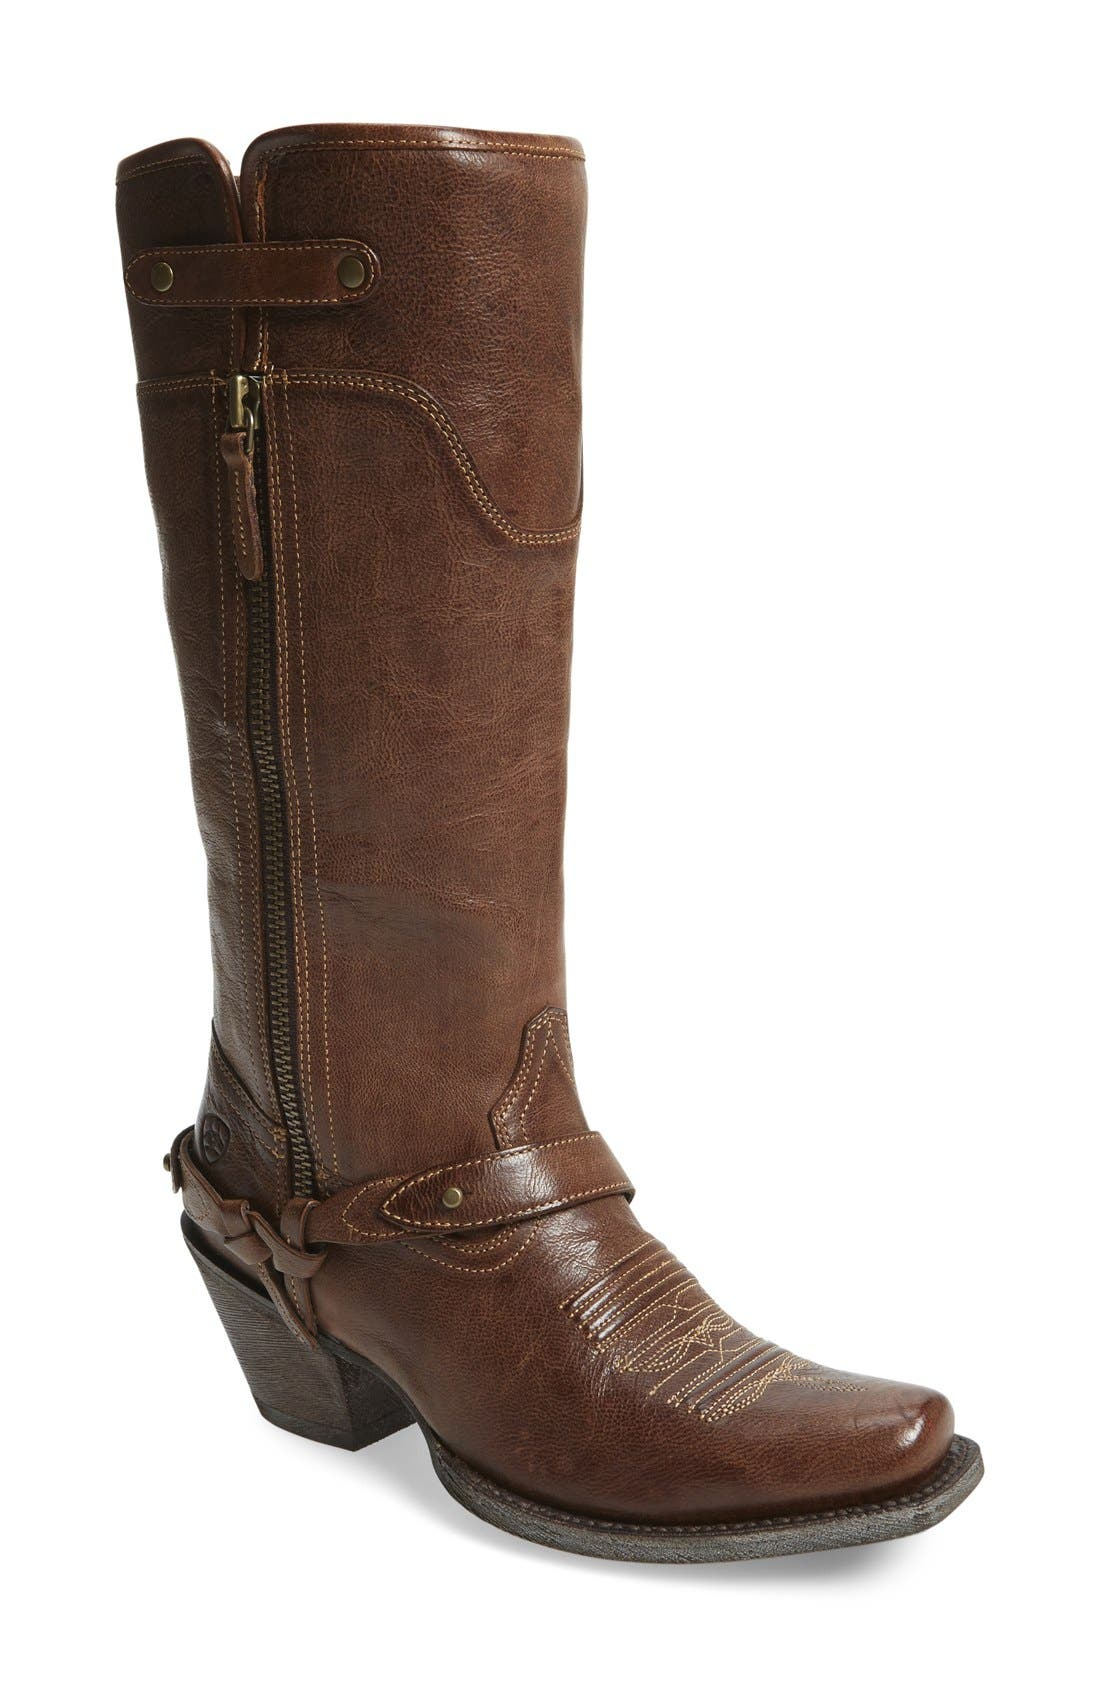 Alternate Image 1 Selected - Ariat 'Wildflower' Boot (Women)